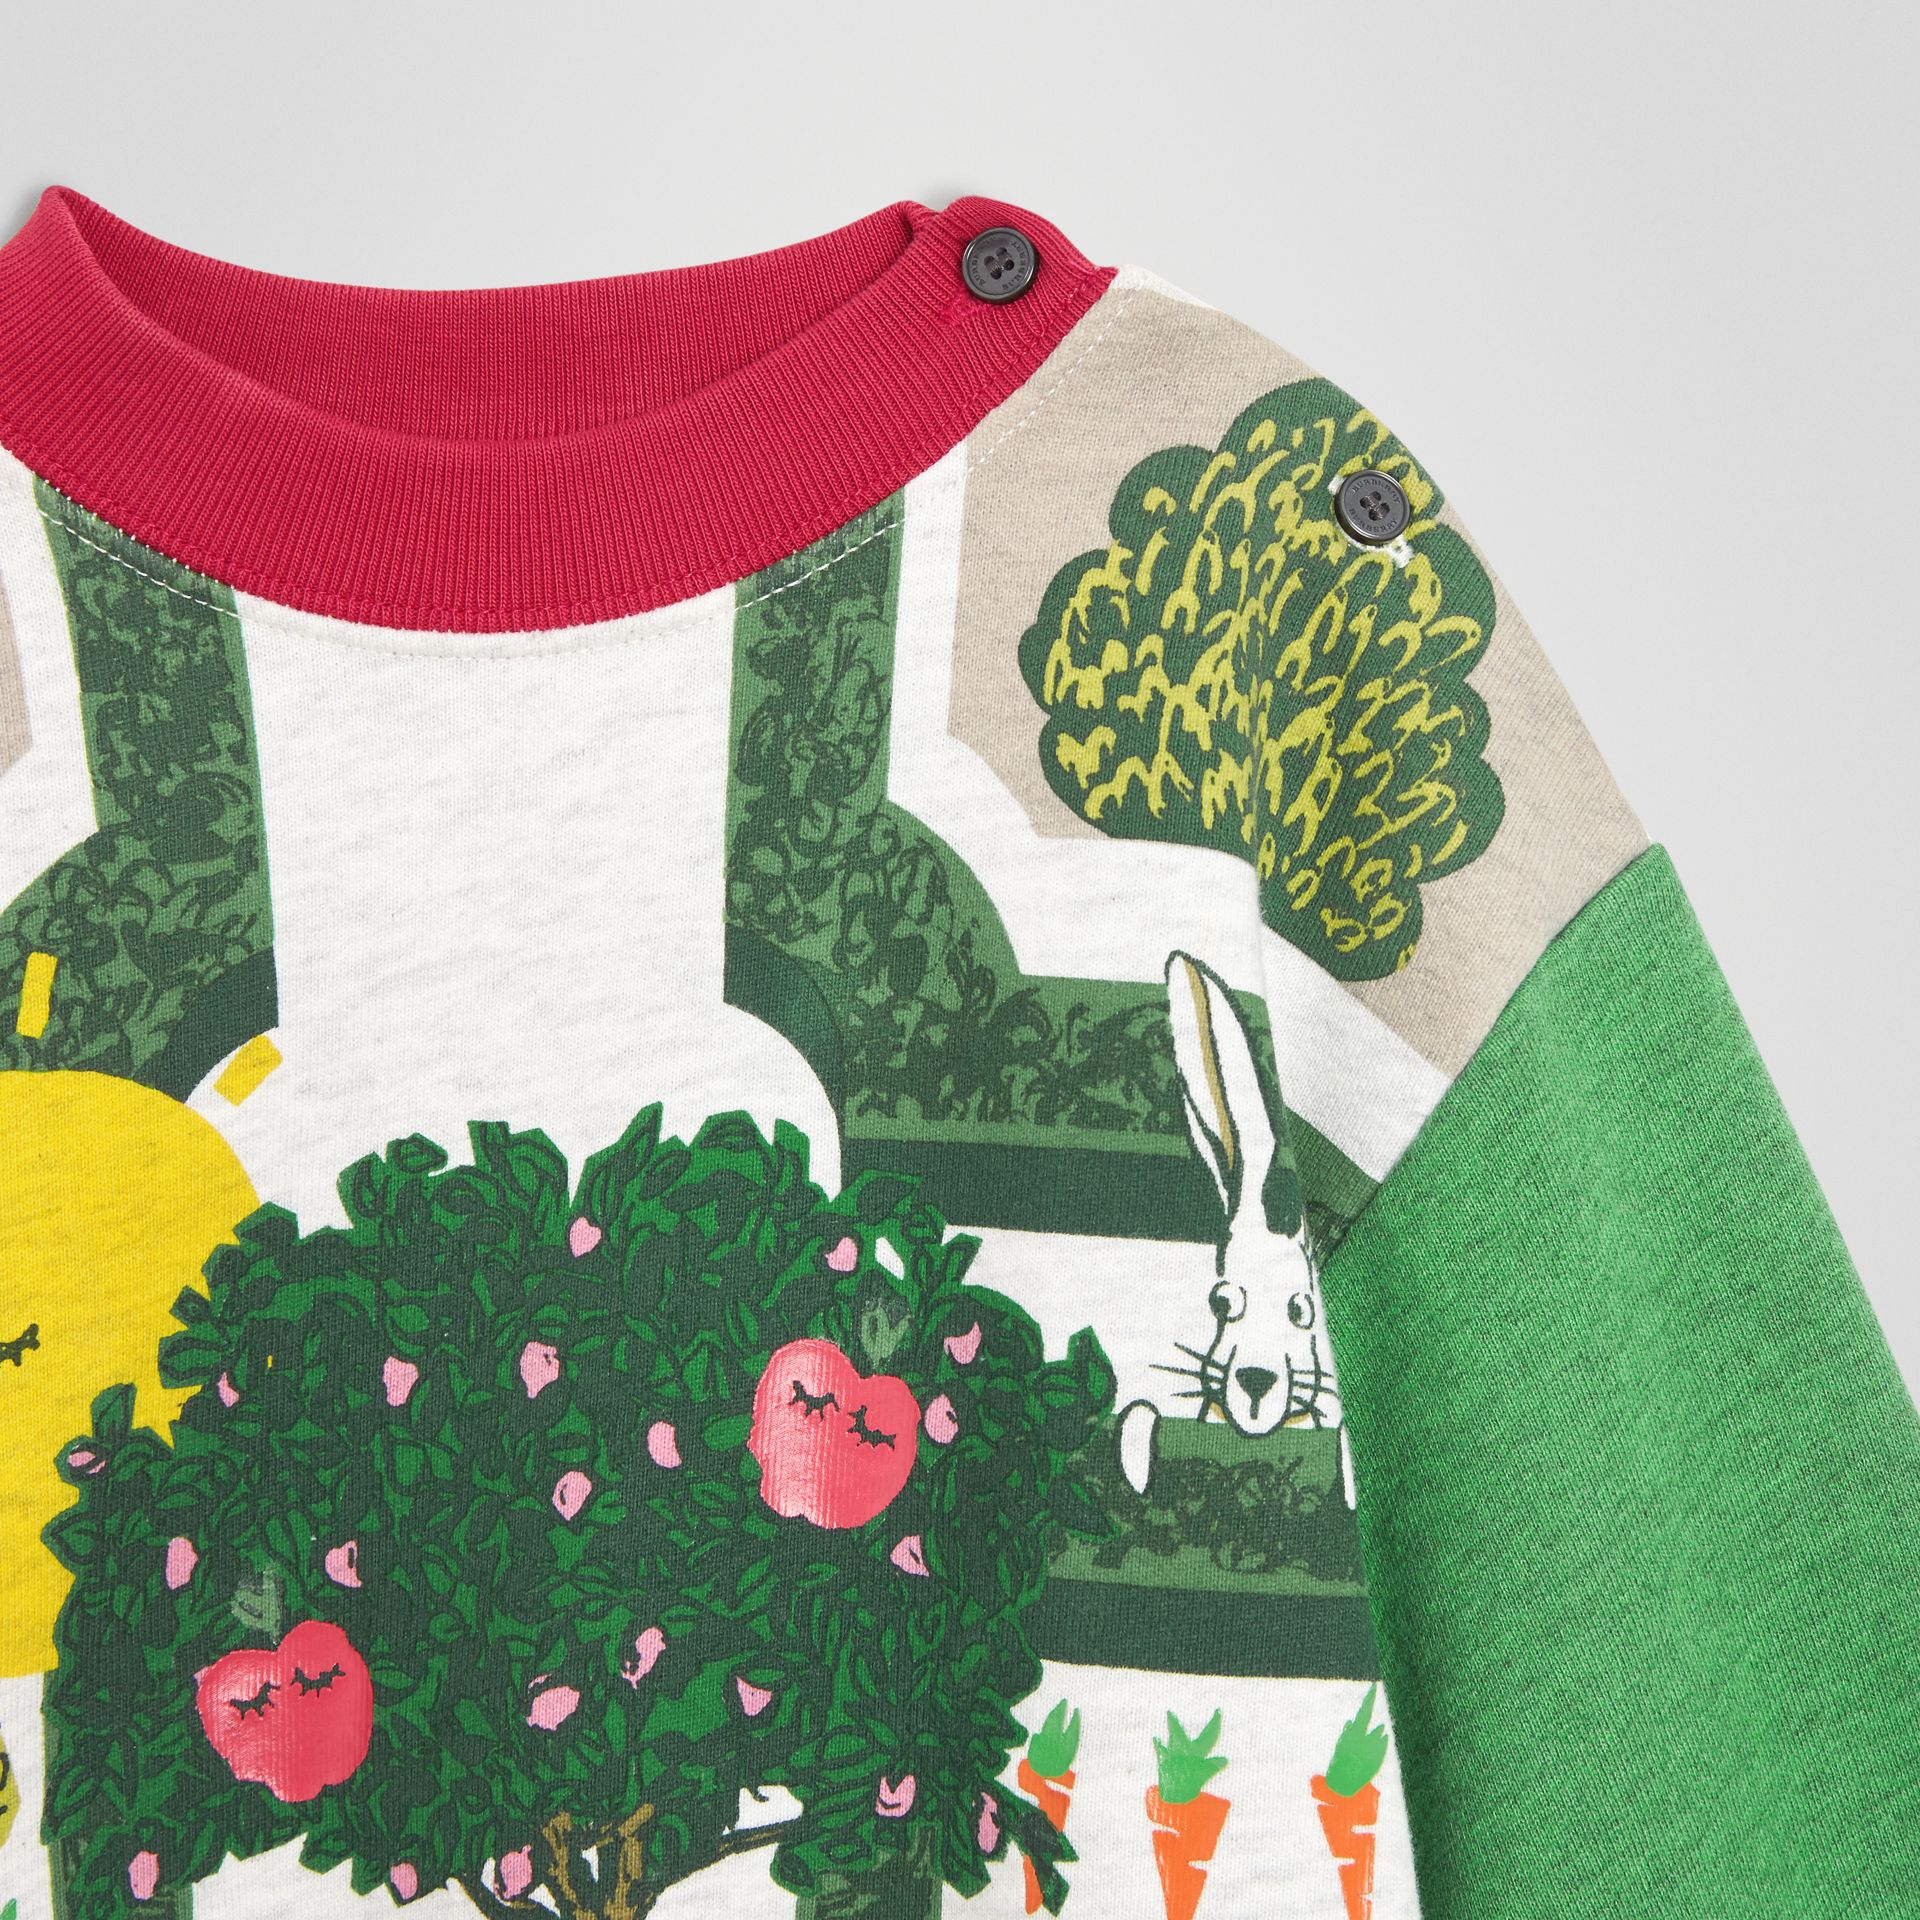 Hedge Maze Print Cotton Dress in Multicolour - Children | Burberry - gallery image 4